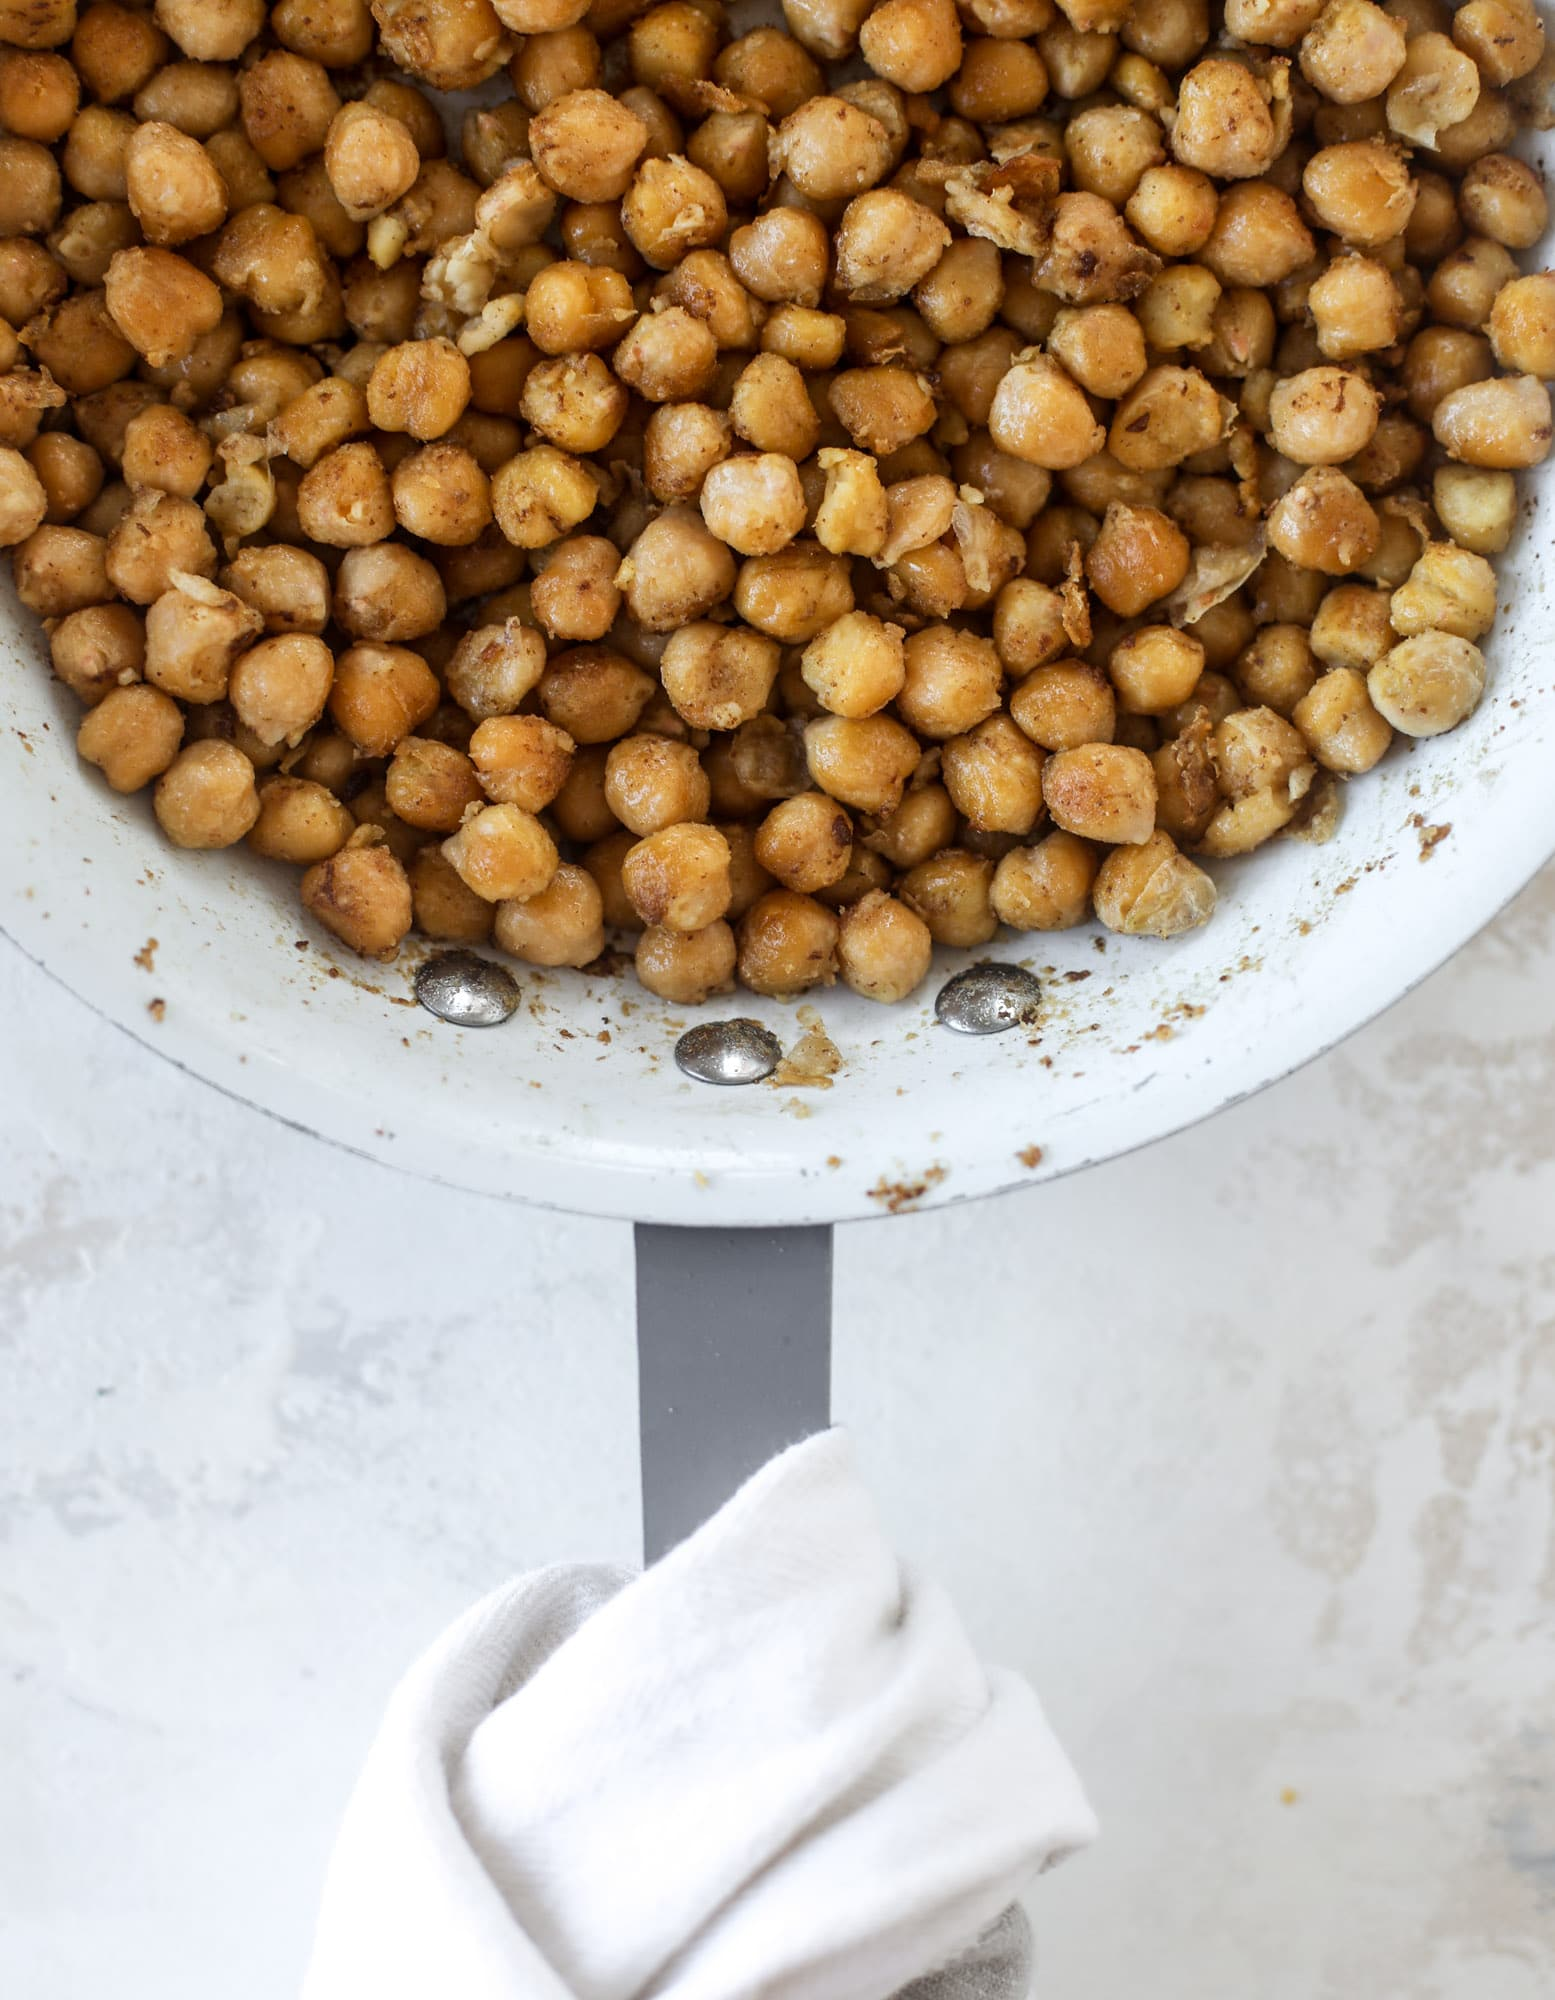 The chickpea bacon ranch salad has a ton of crispy, crunchy texture and flavor. It's satisfying and super easy to prep ahead of time too! I howsweeteats.com #chickpea #salad